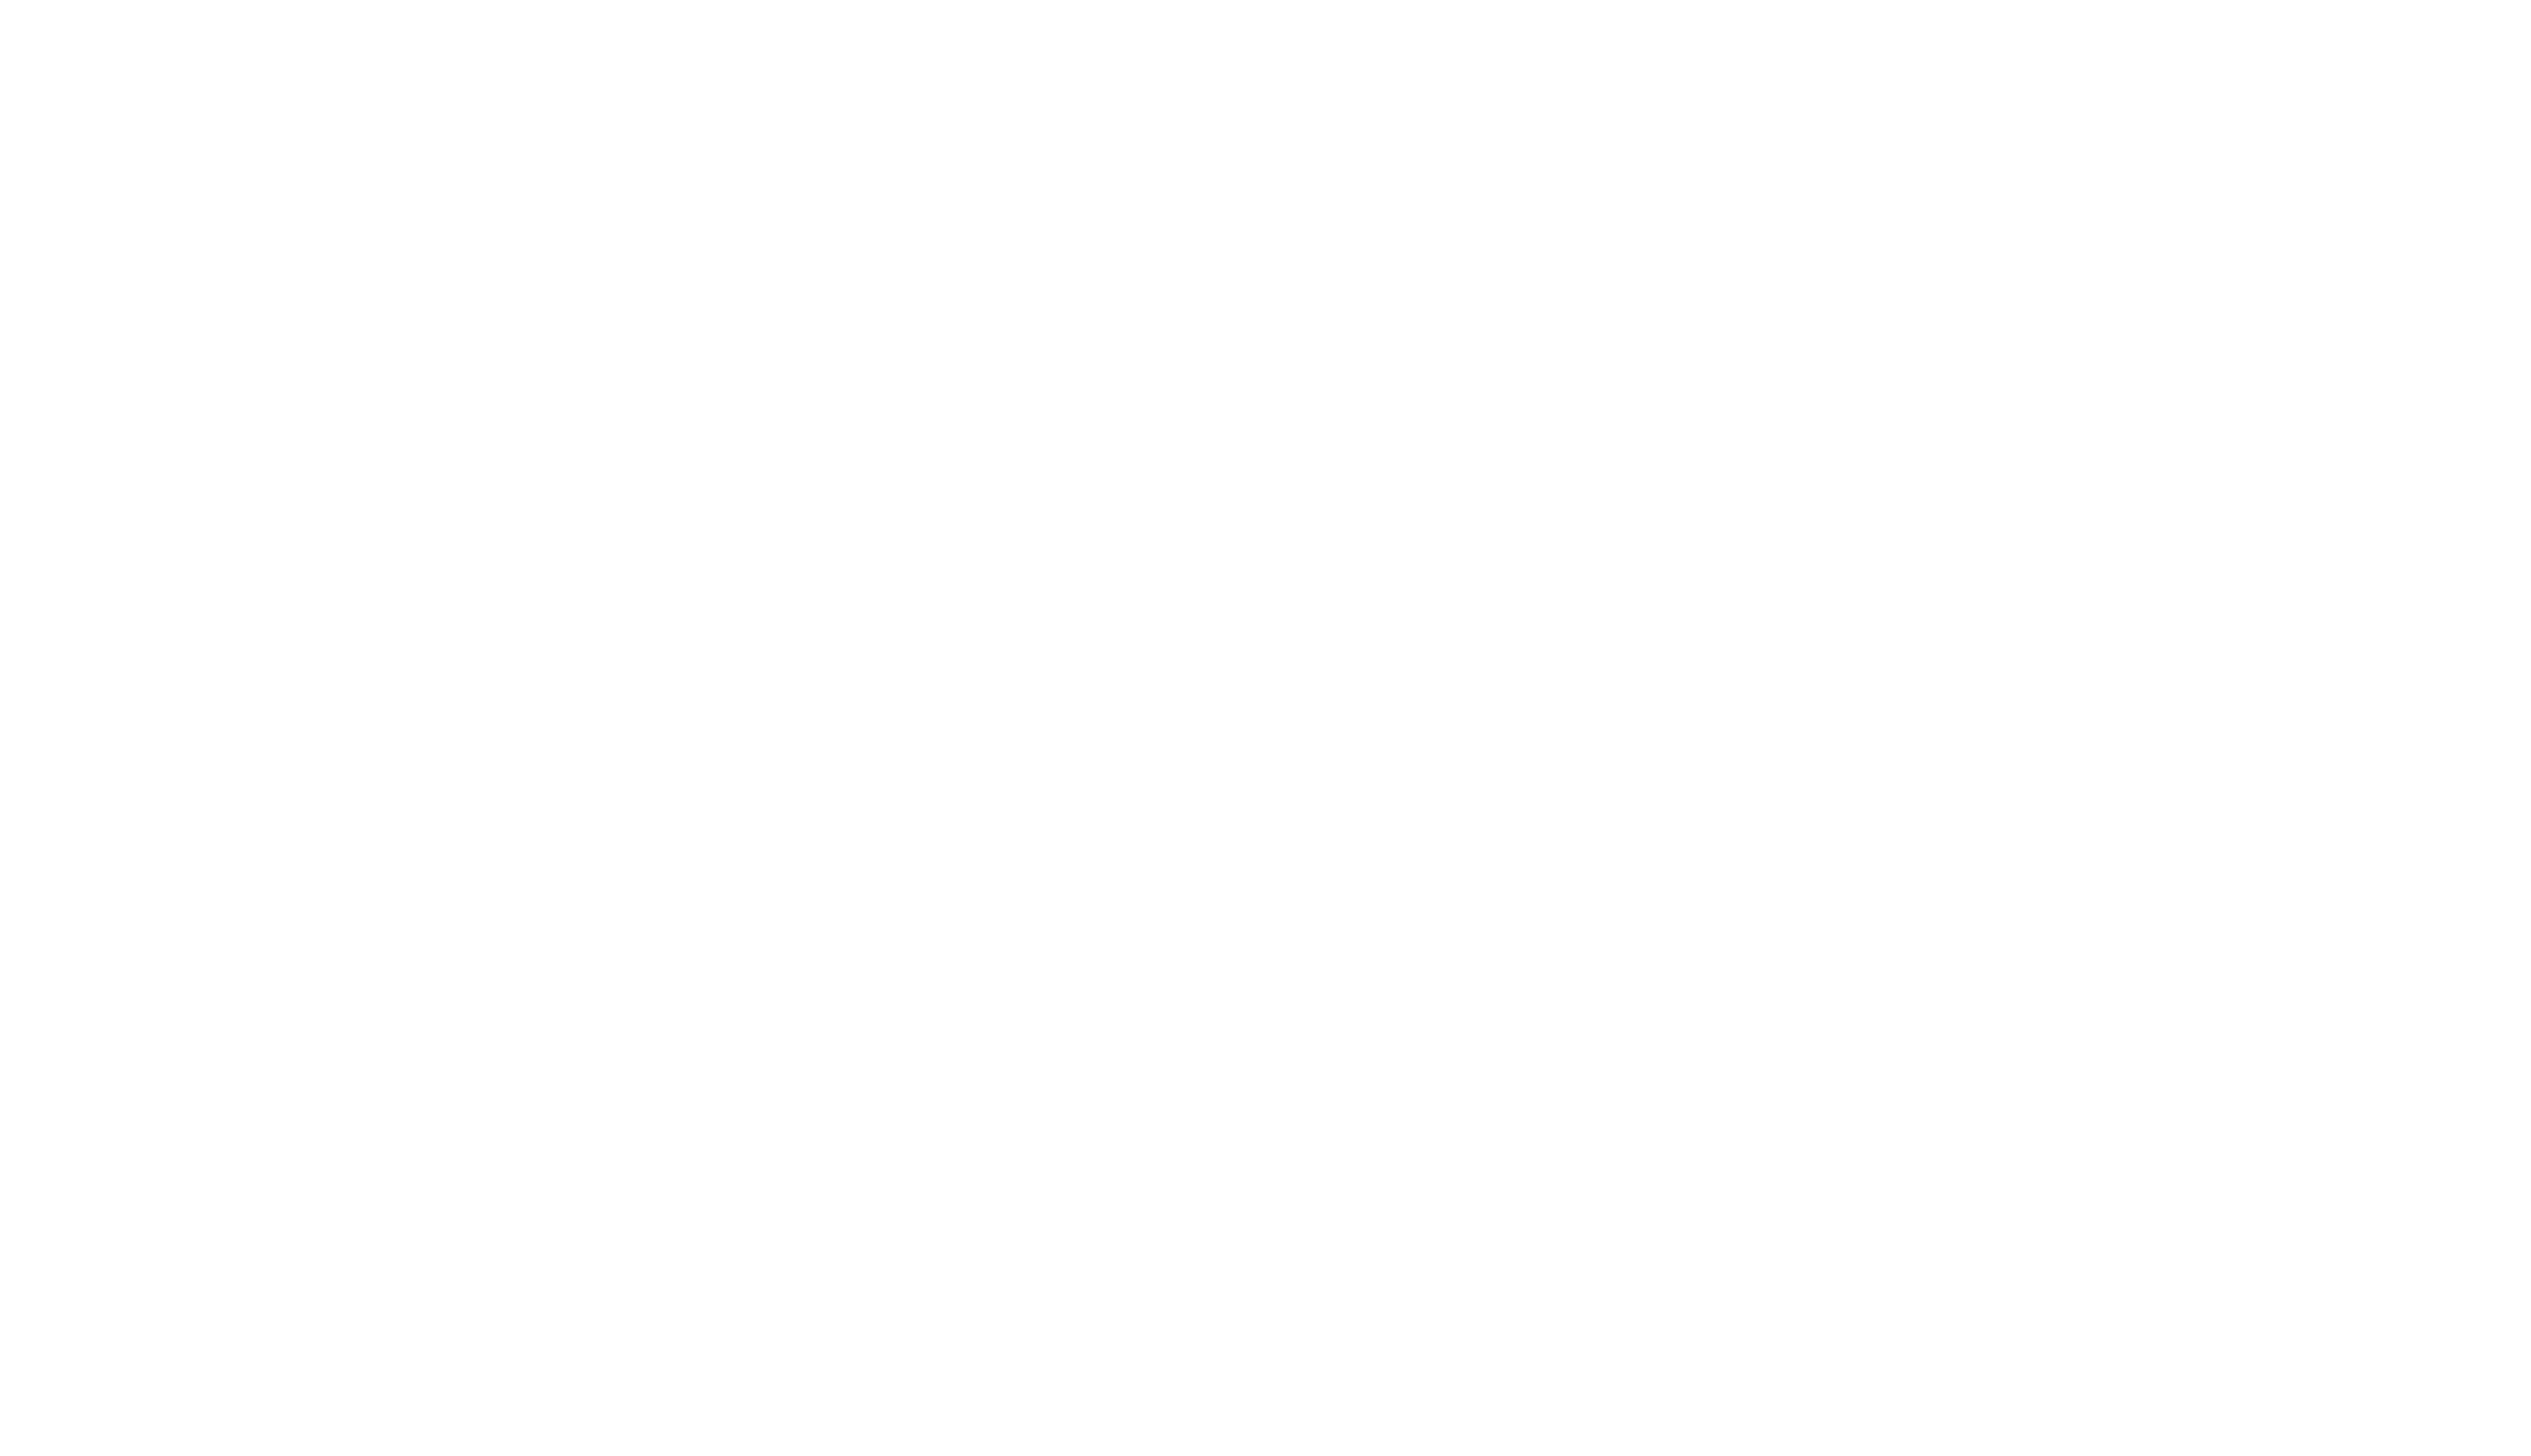 Millmakers